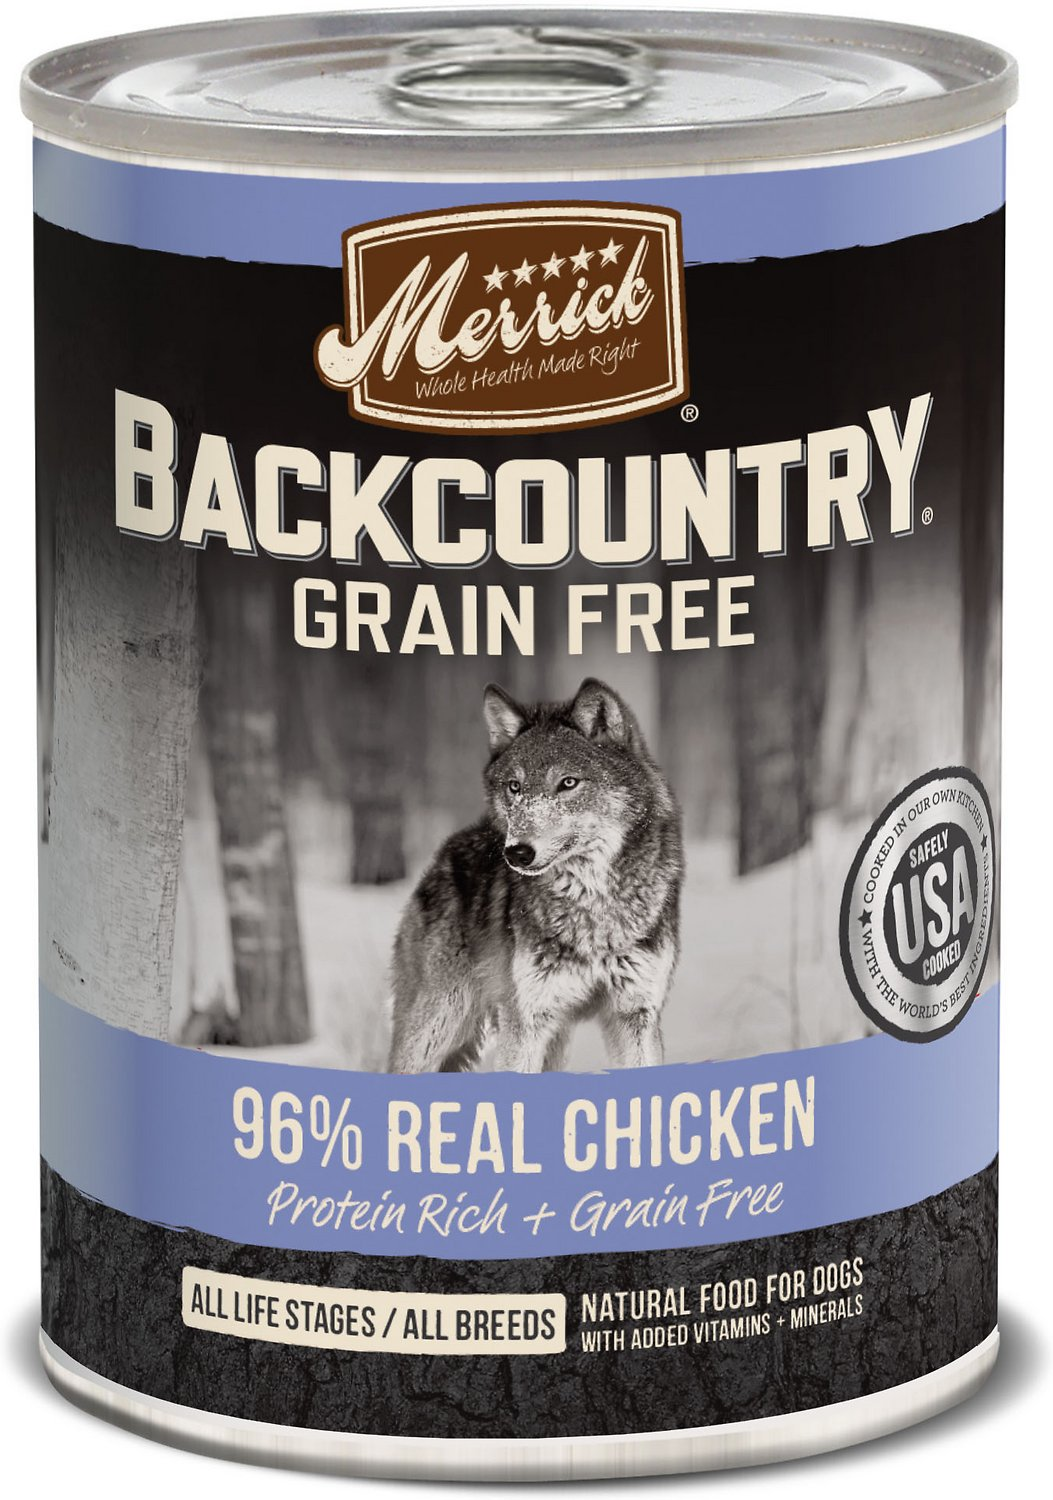 Merrick Backcountry Grain-Free 96% Real Chicken Recipe Canned Dog Food, 12.7-oz